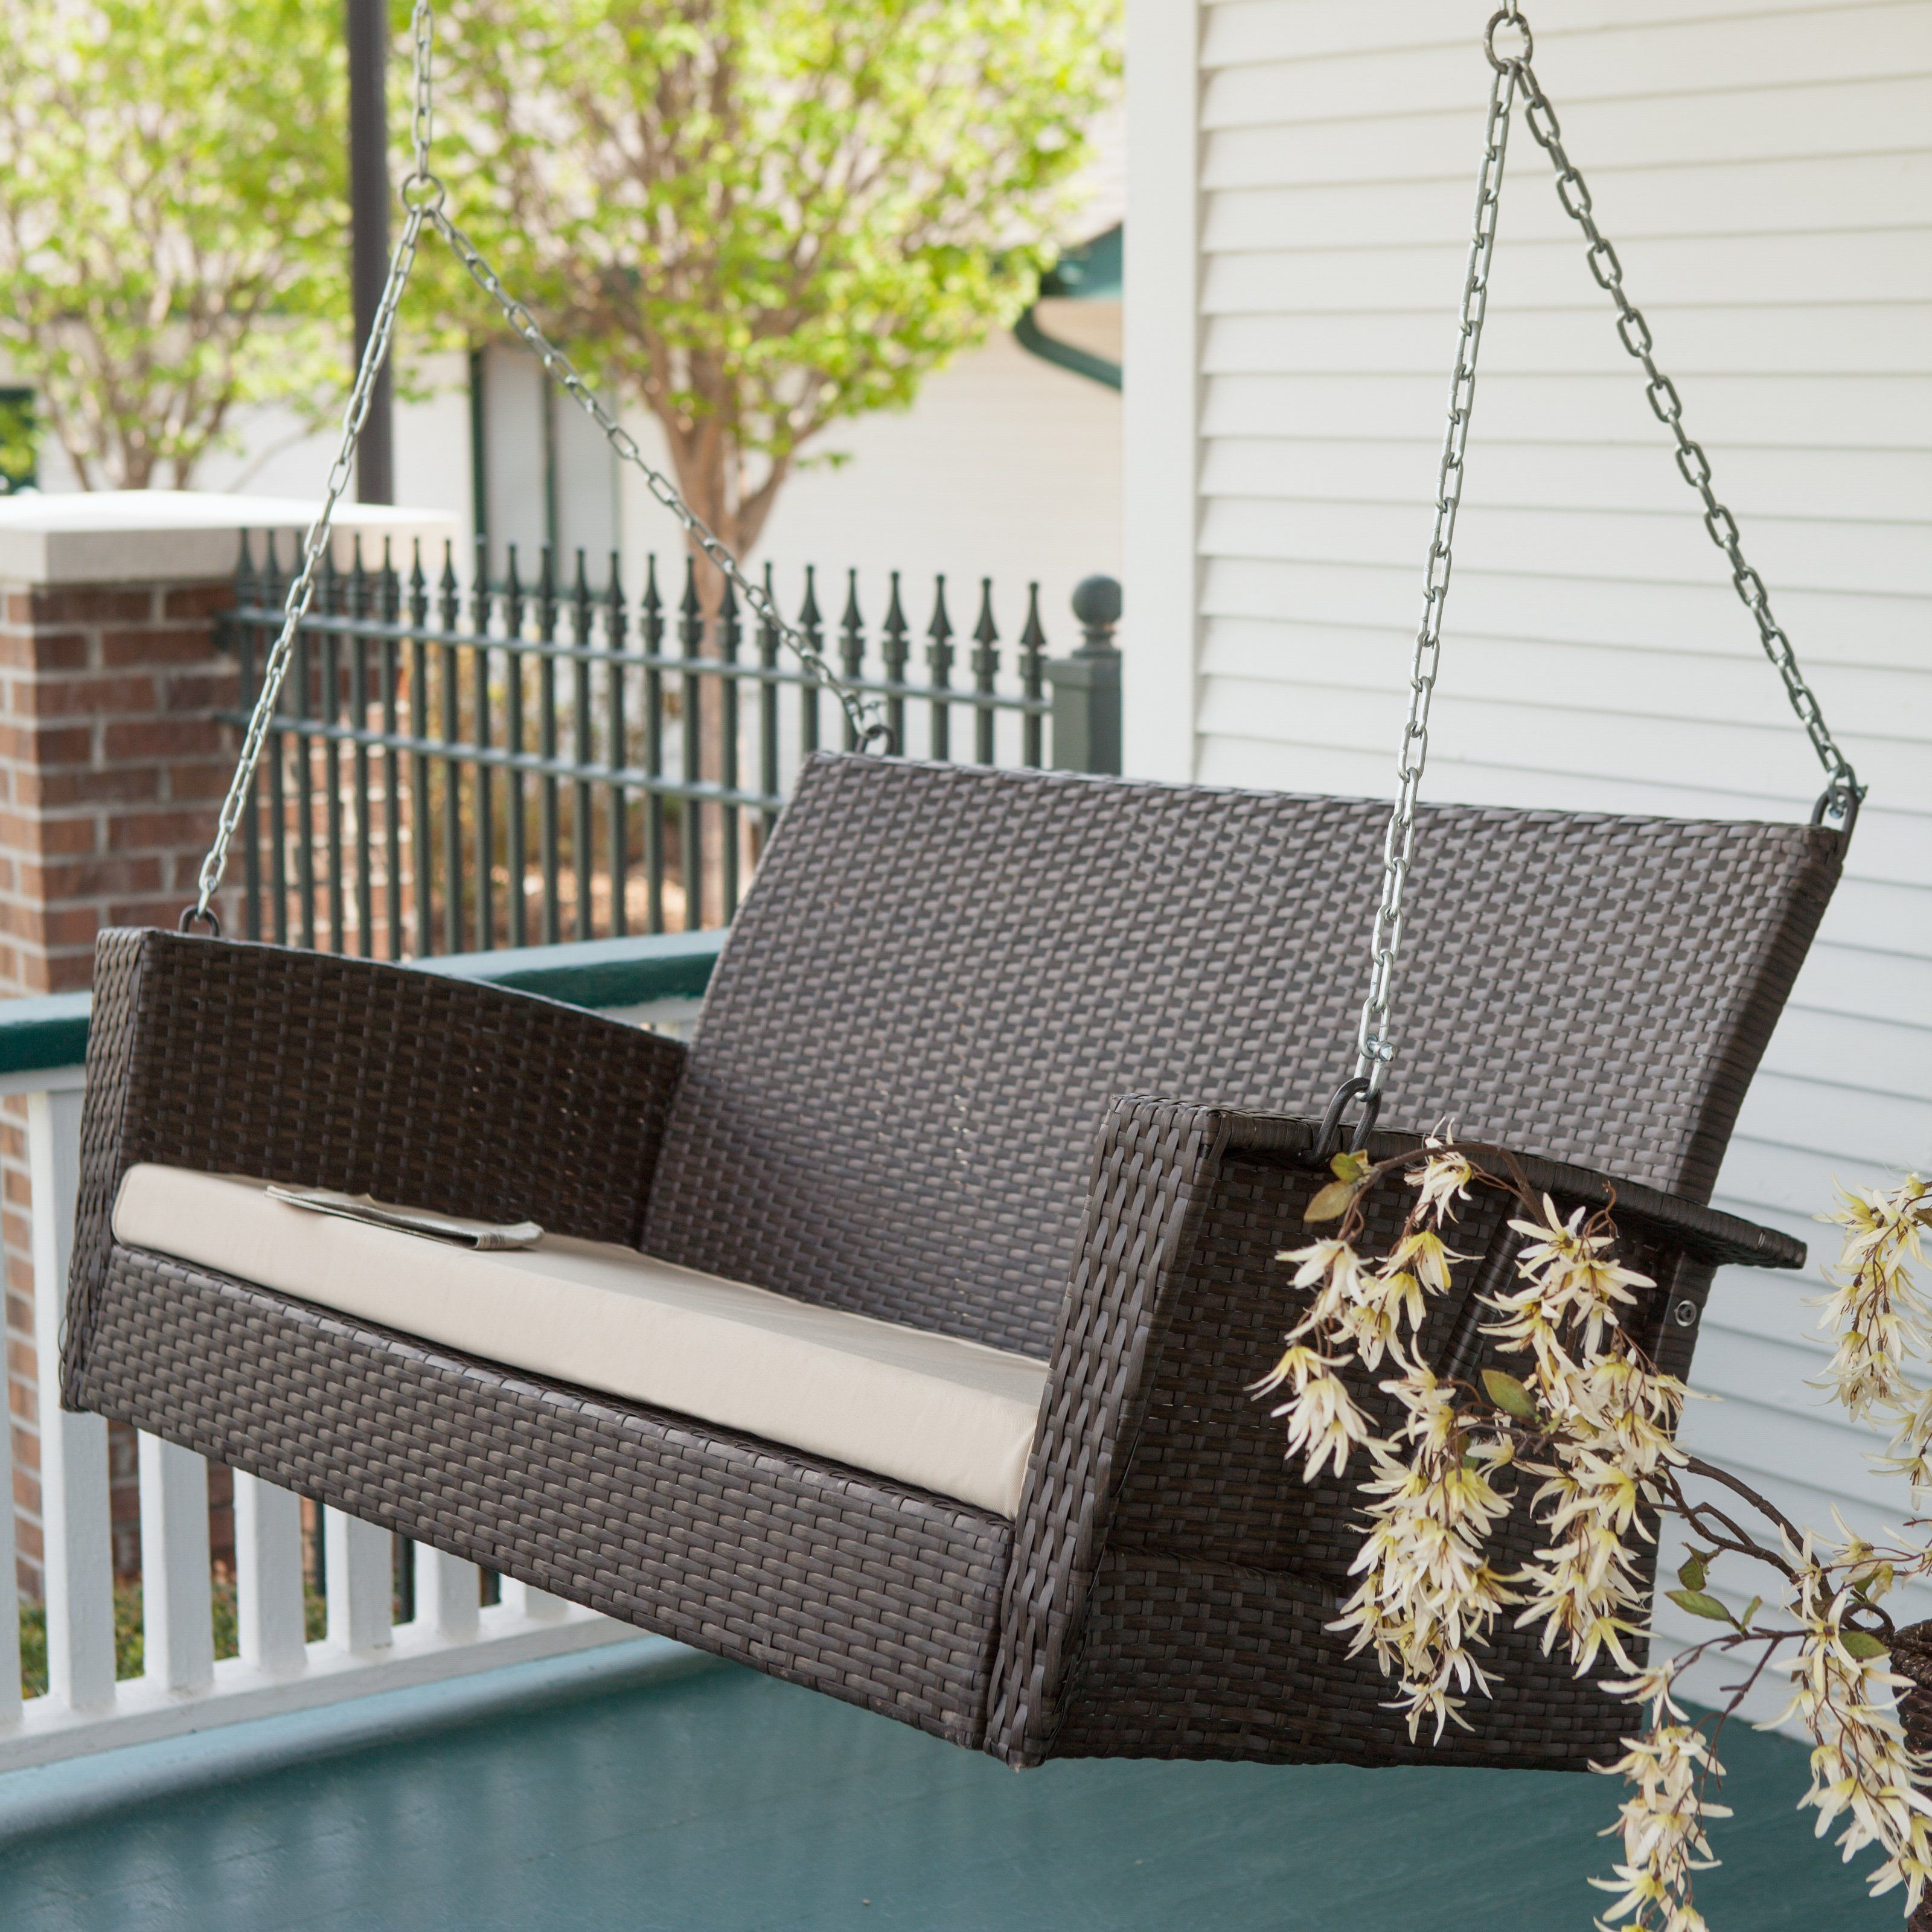 awesome design swing ideas cushions furniture outdoor new of chairs chair patio